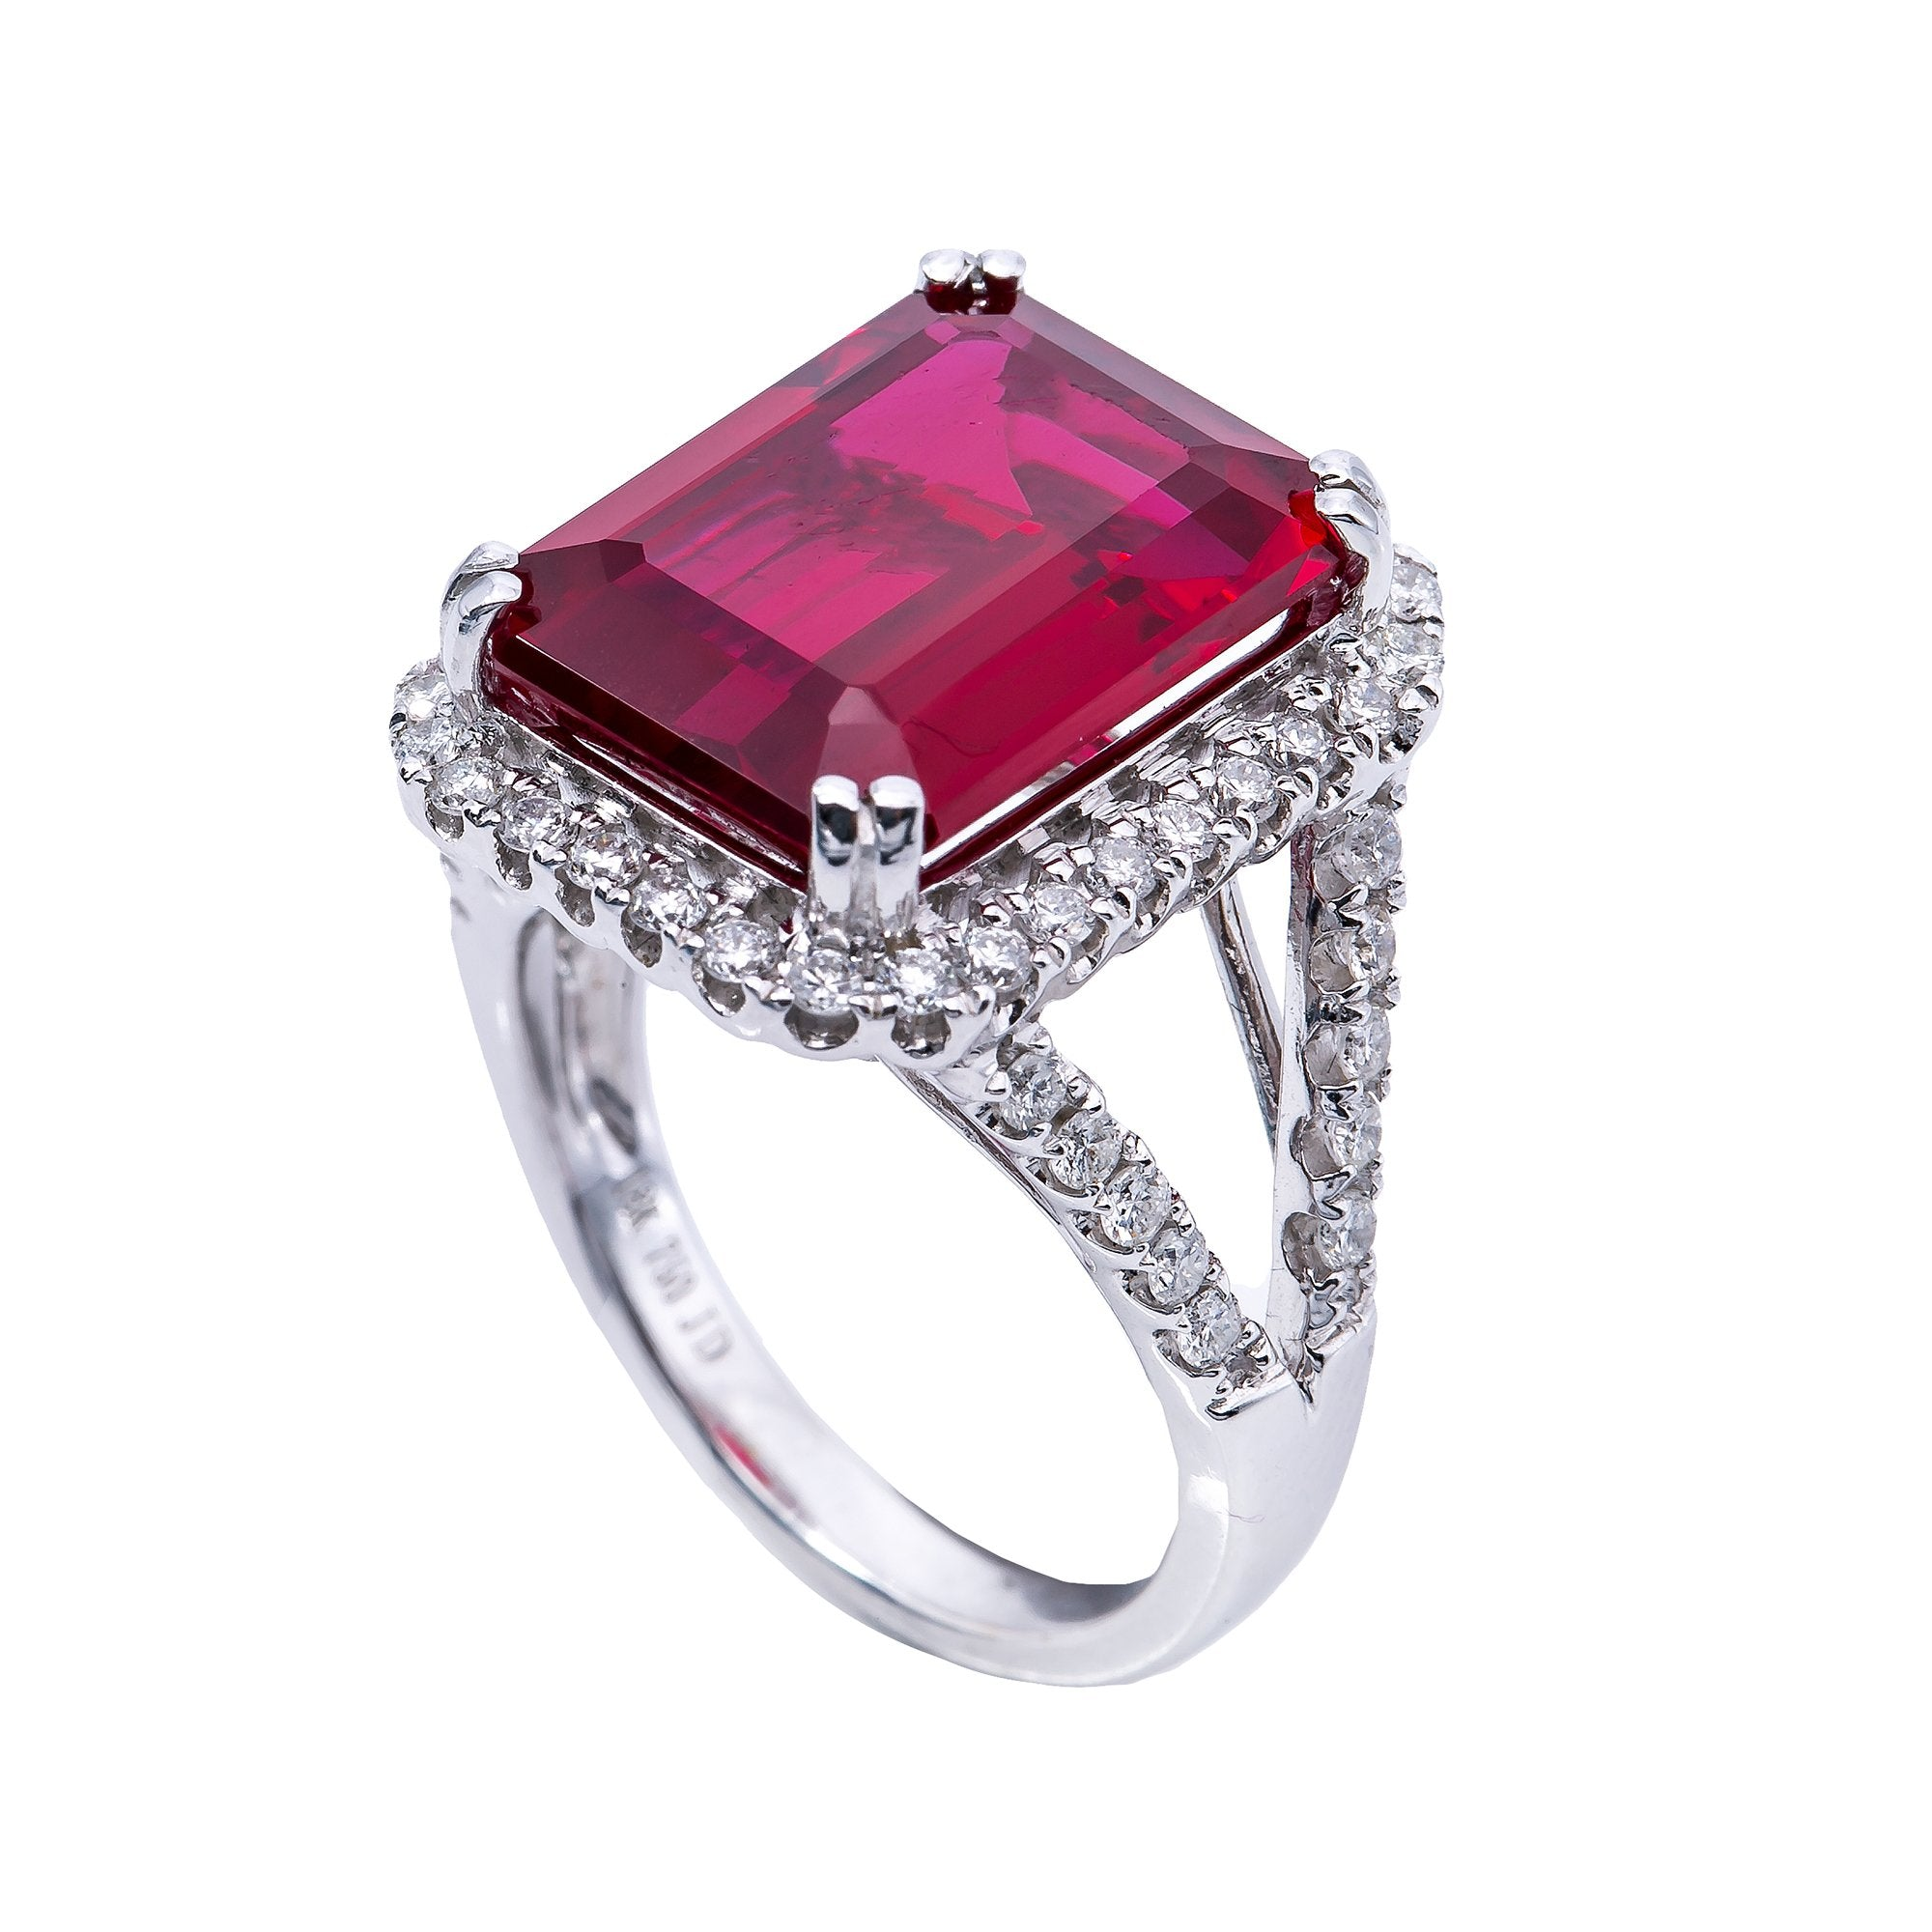 18K White Gold  Square Shaped Diamond Ring with Ruby